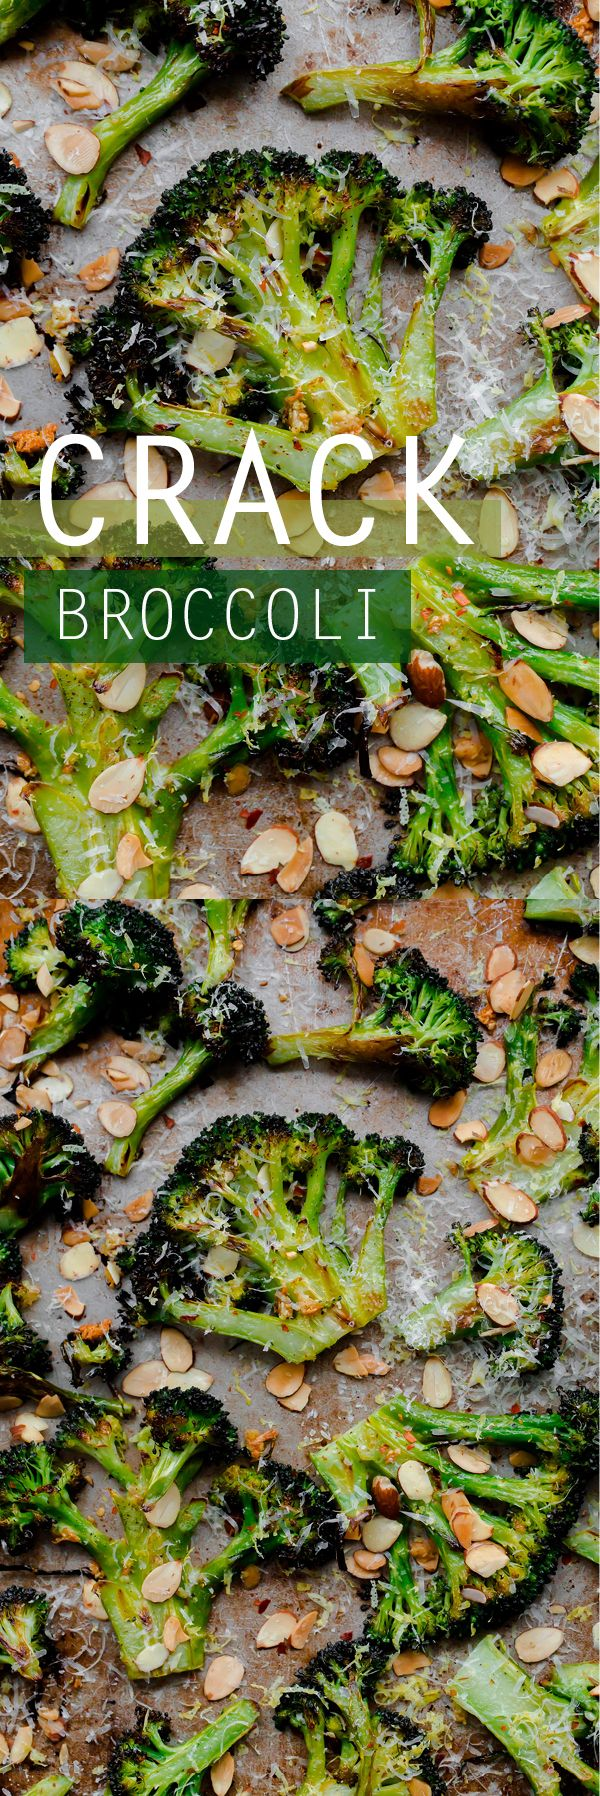 Crack Broccoli -   21 yummy broccoli recipes